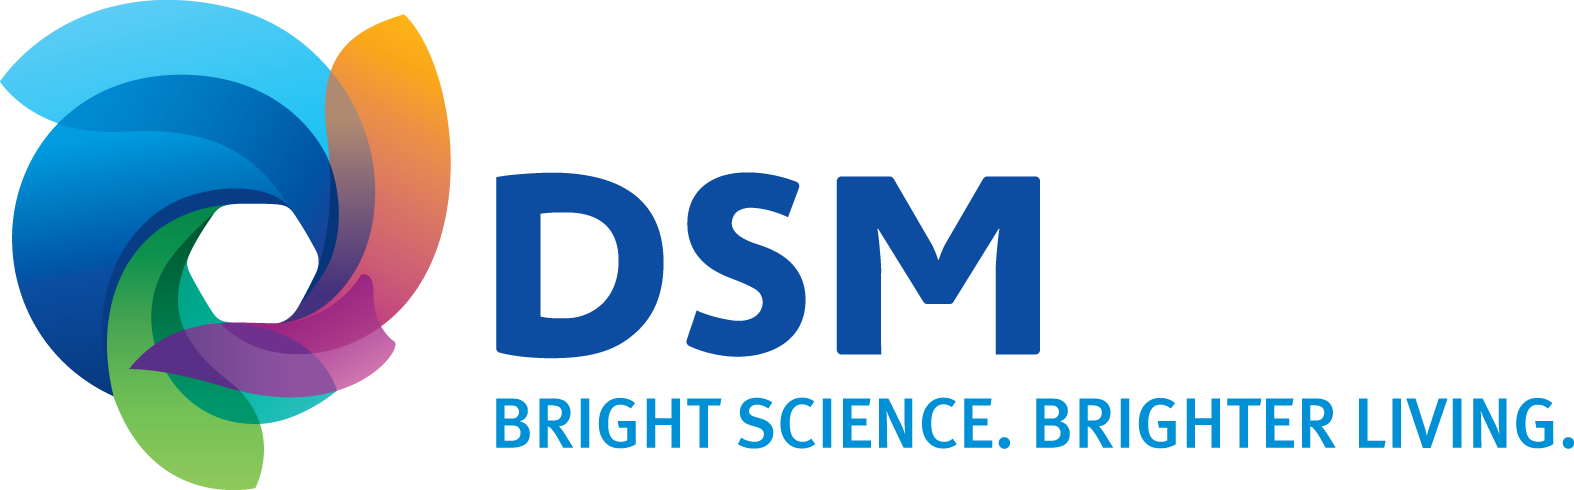 DSM Bright Science